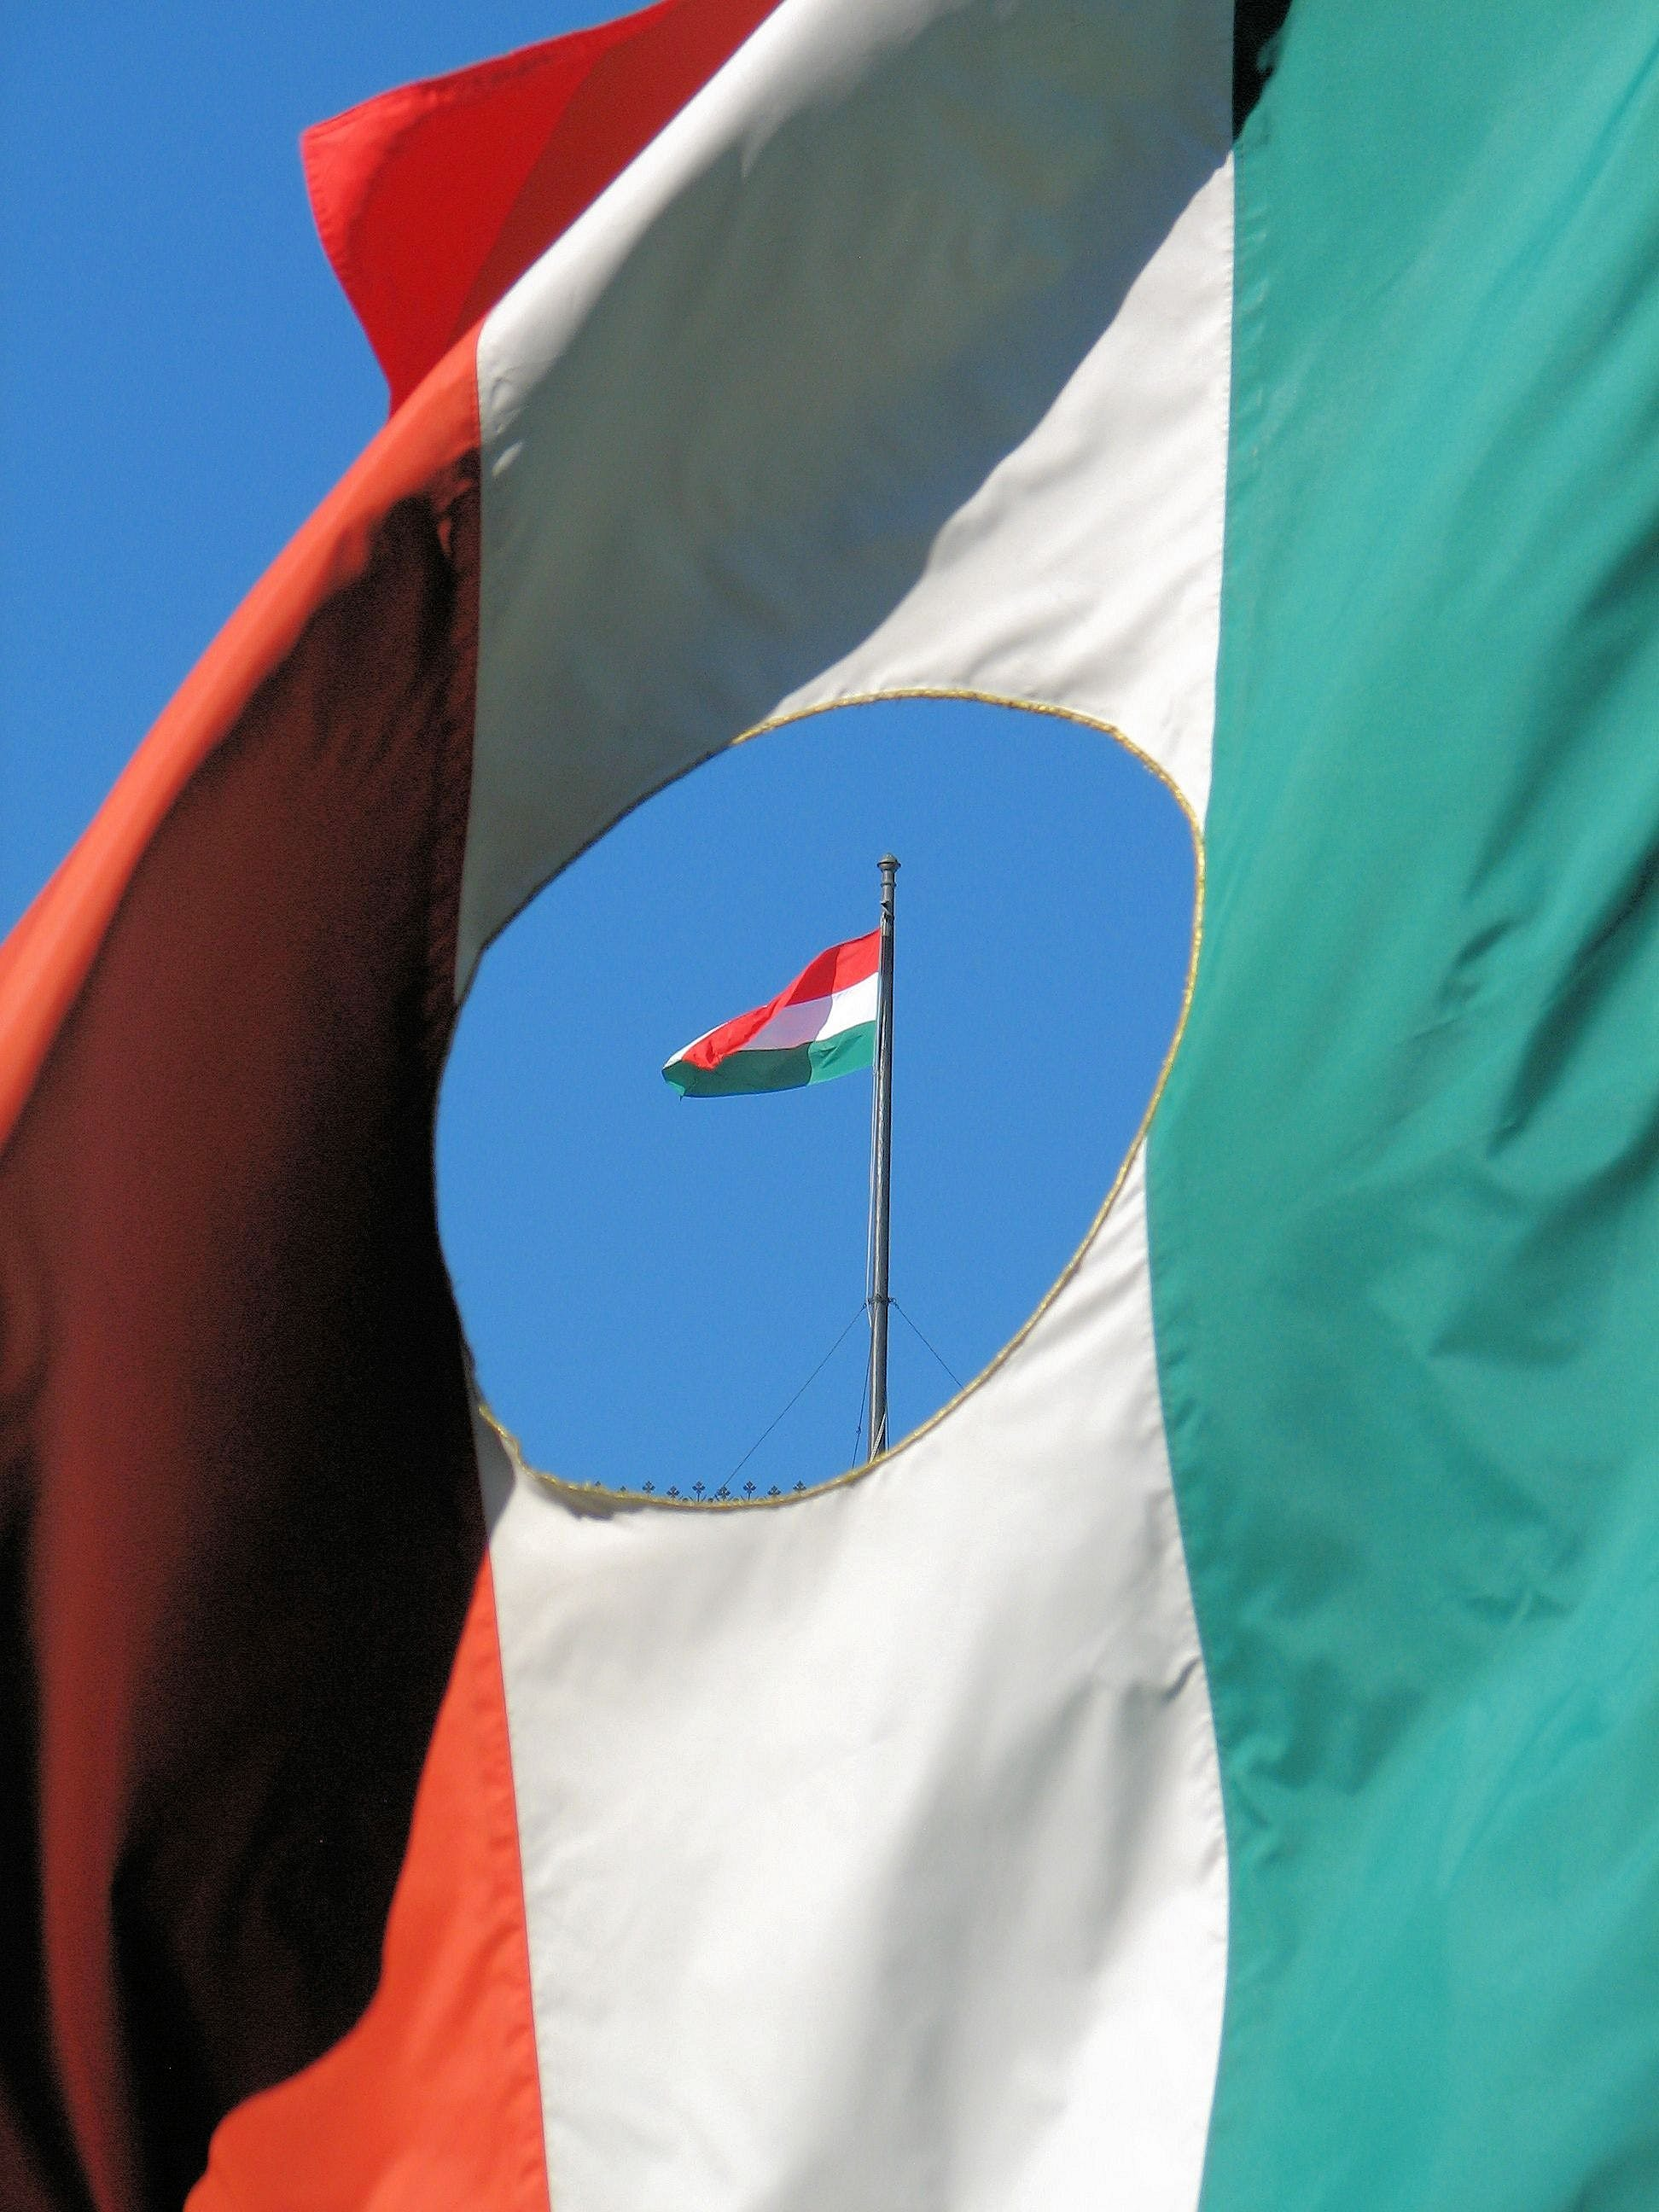 Free stock photo of 1956, Budapest, Flag with the Hole, Freedom Flag